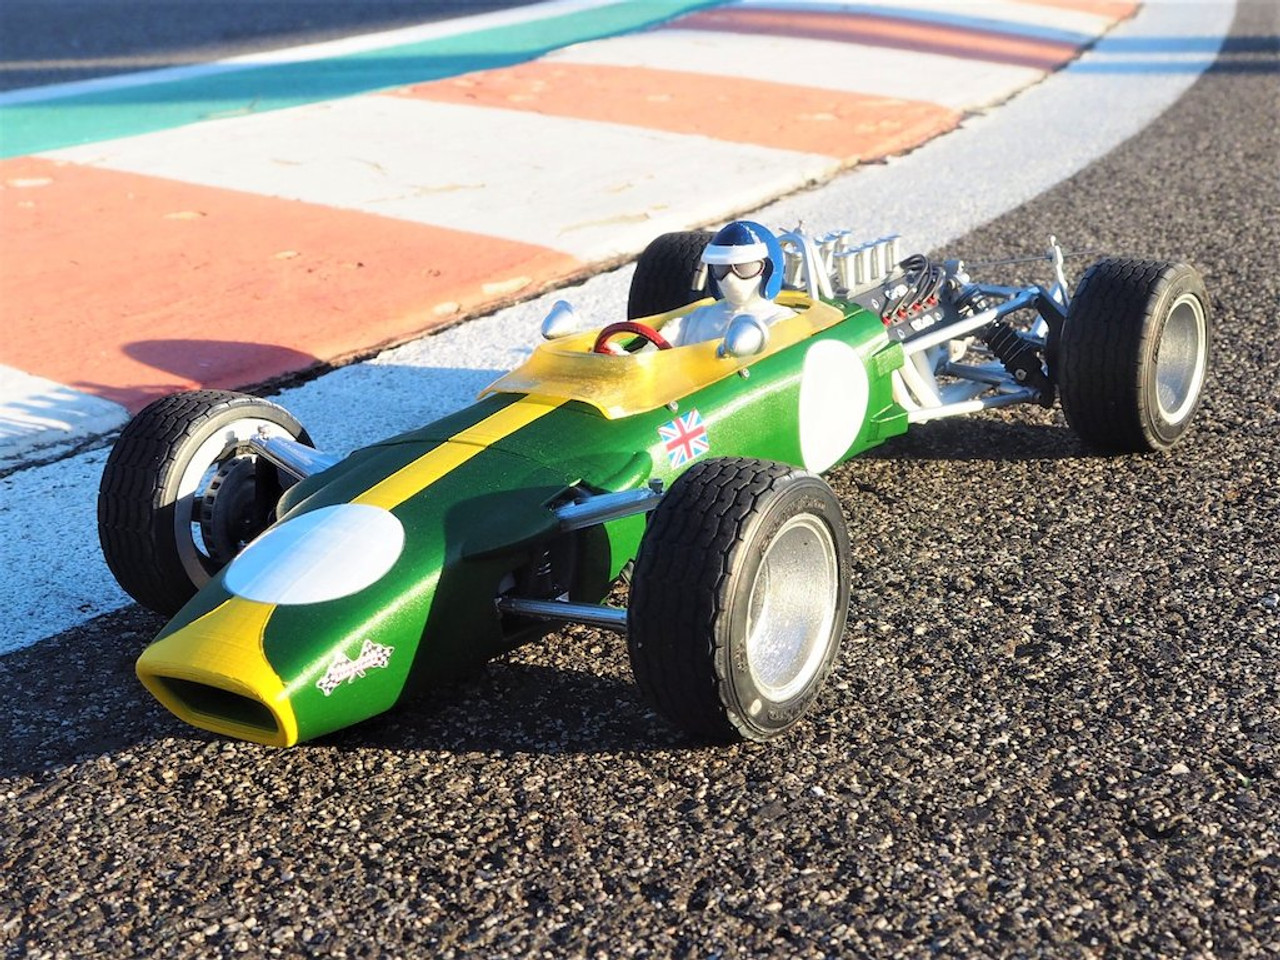 Grand Prix 3D 1/10th Kit with Motor and Servo